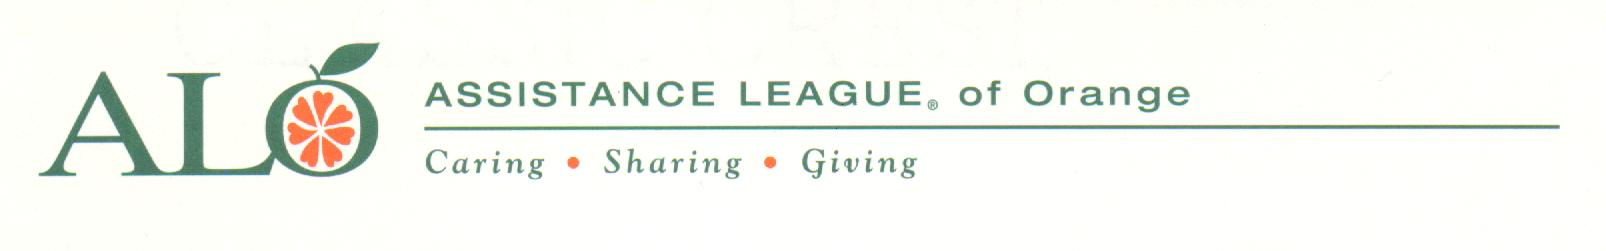 ASSISTANCE LEAGUE of Orange is a nonprofit volunteer organization dedicated